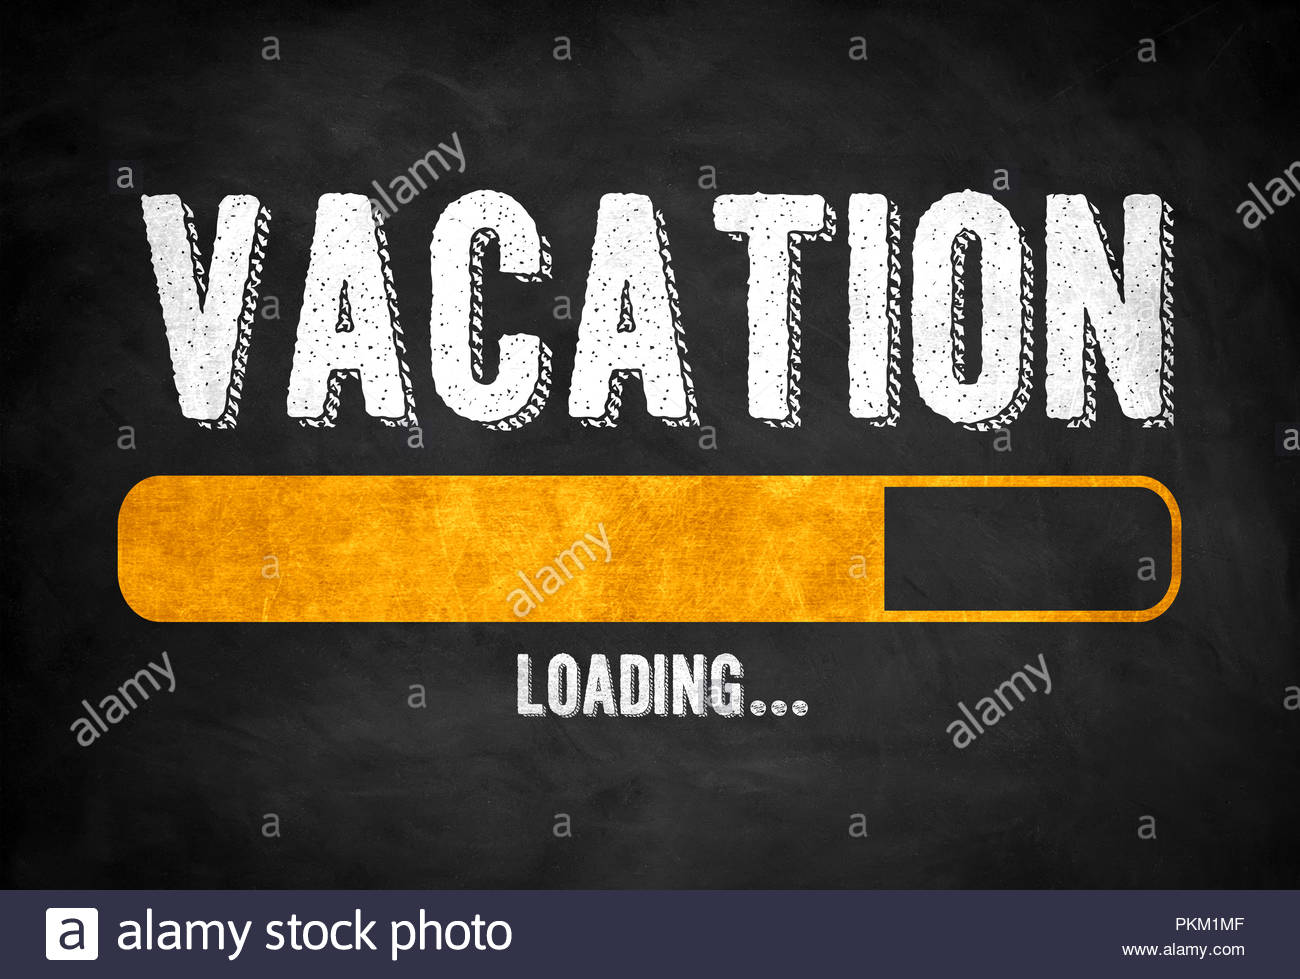 Vacation incoming - Stock Image